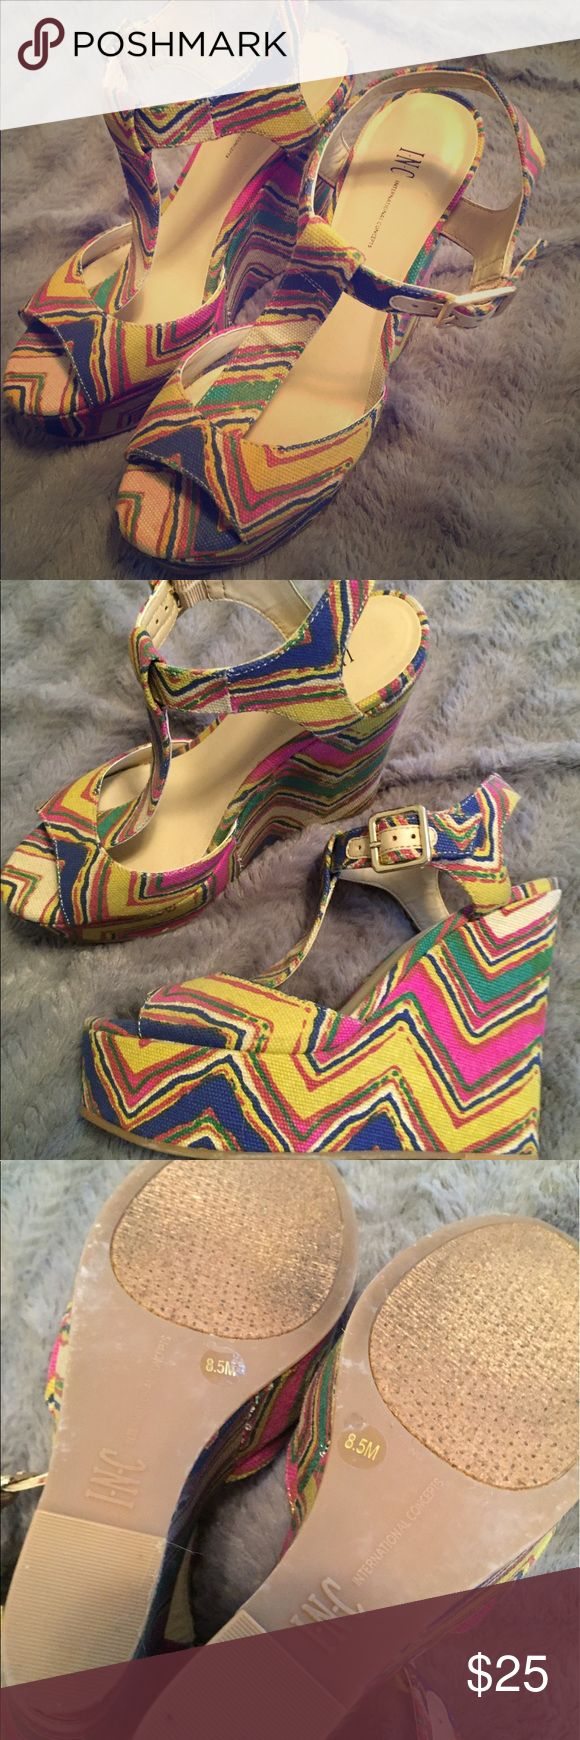 INC gently worn wedges Beautiful colorful wedges worn only a few times INC International Concepts Shoes Wedges